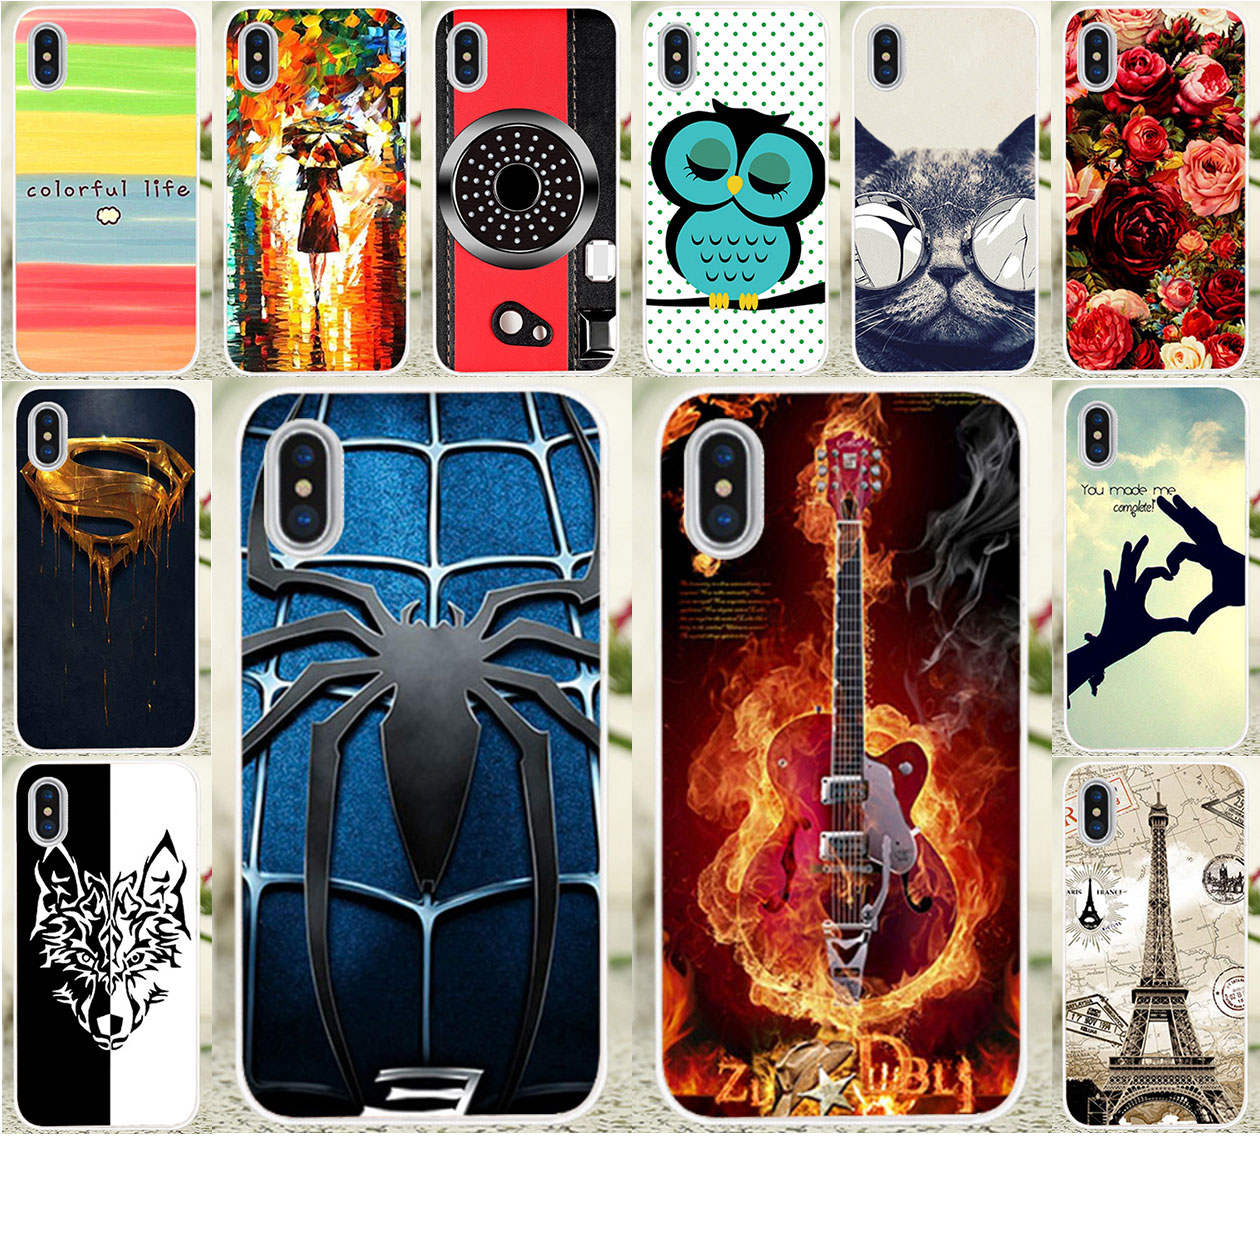 TAOYUNXI Silicone OR Plastic Phone Case Cover For Samsung Galaxy J1 Mini Prime V2 SM-J106 4.0 Inch Back Case Housing